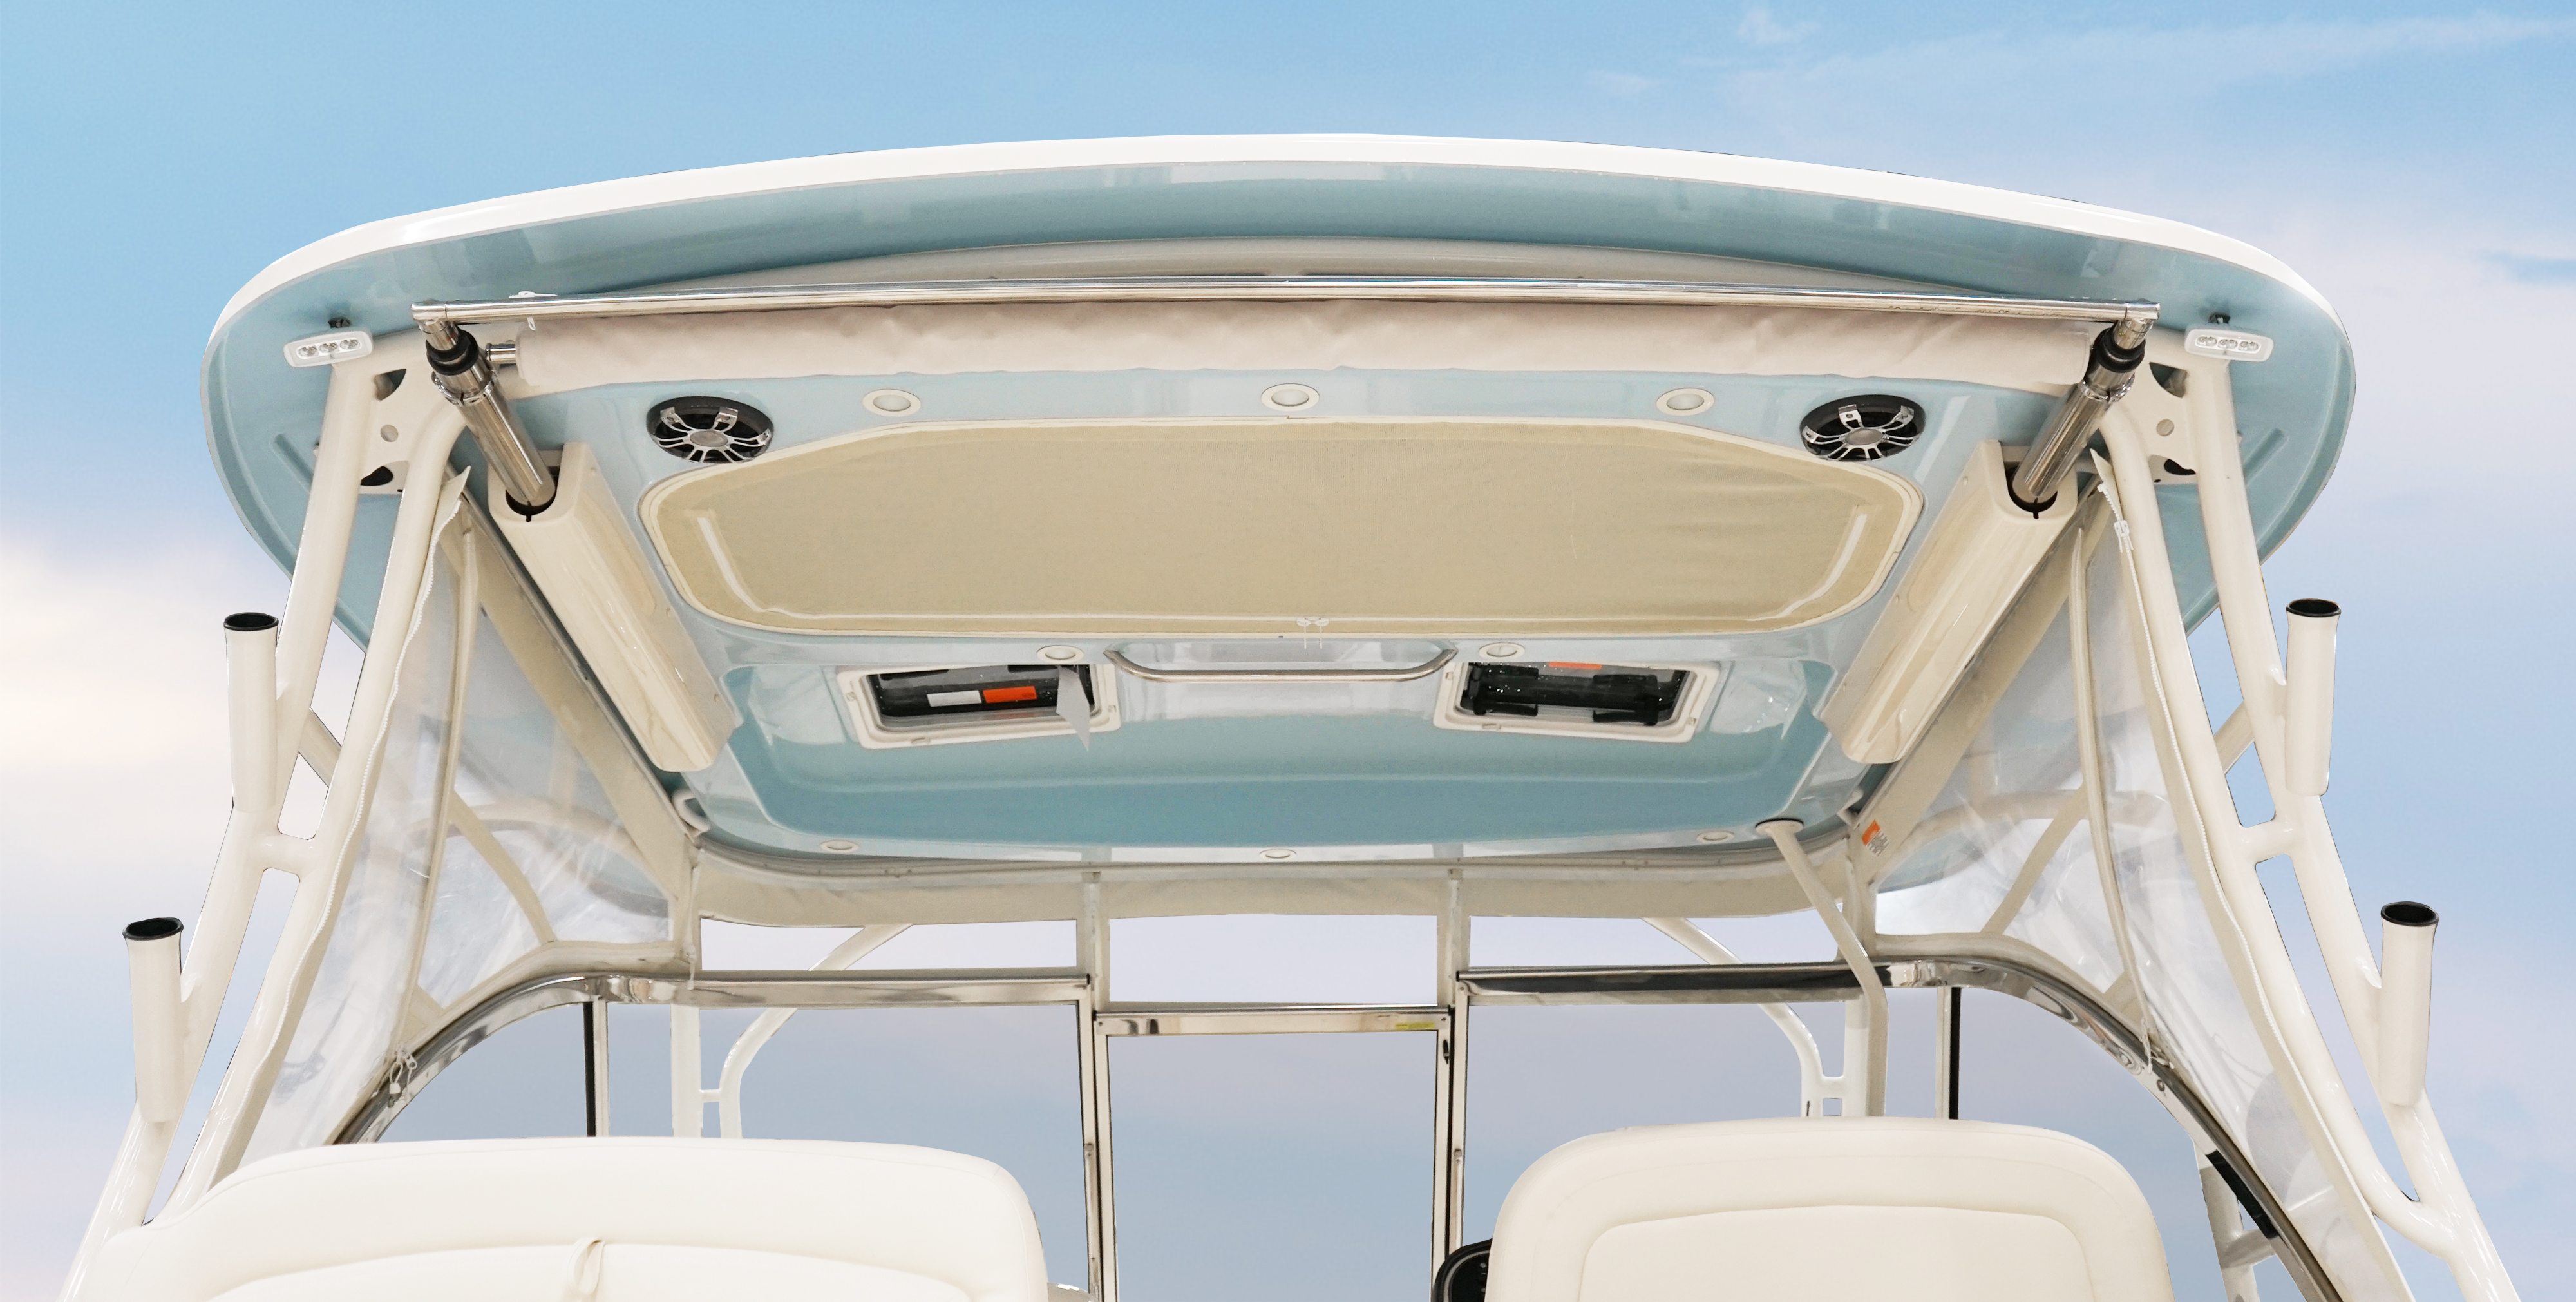 Grady-White Freedom 335 33-foot dual console hardtop color to match hull color